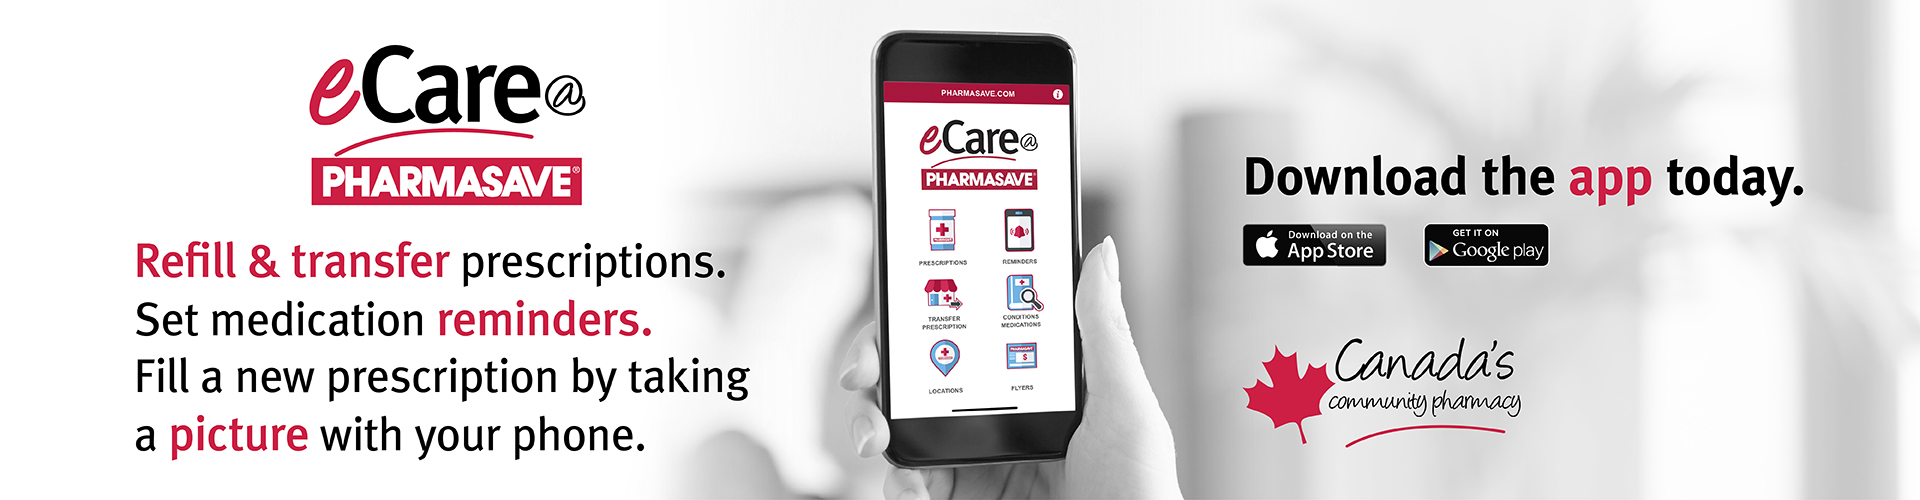 Download the eCare@Pharmasave app today to help you manage your medications.